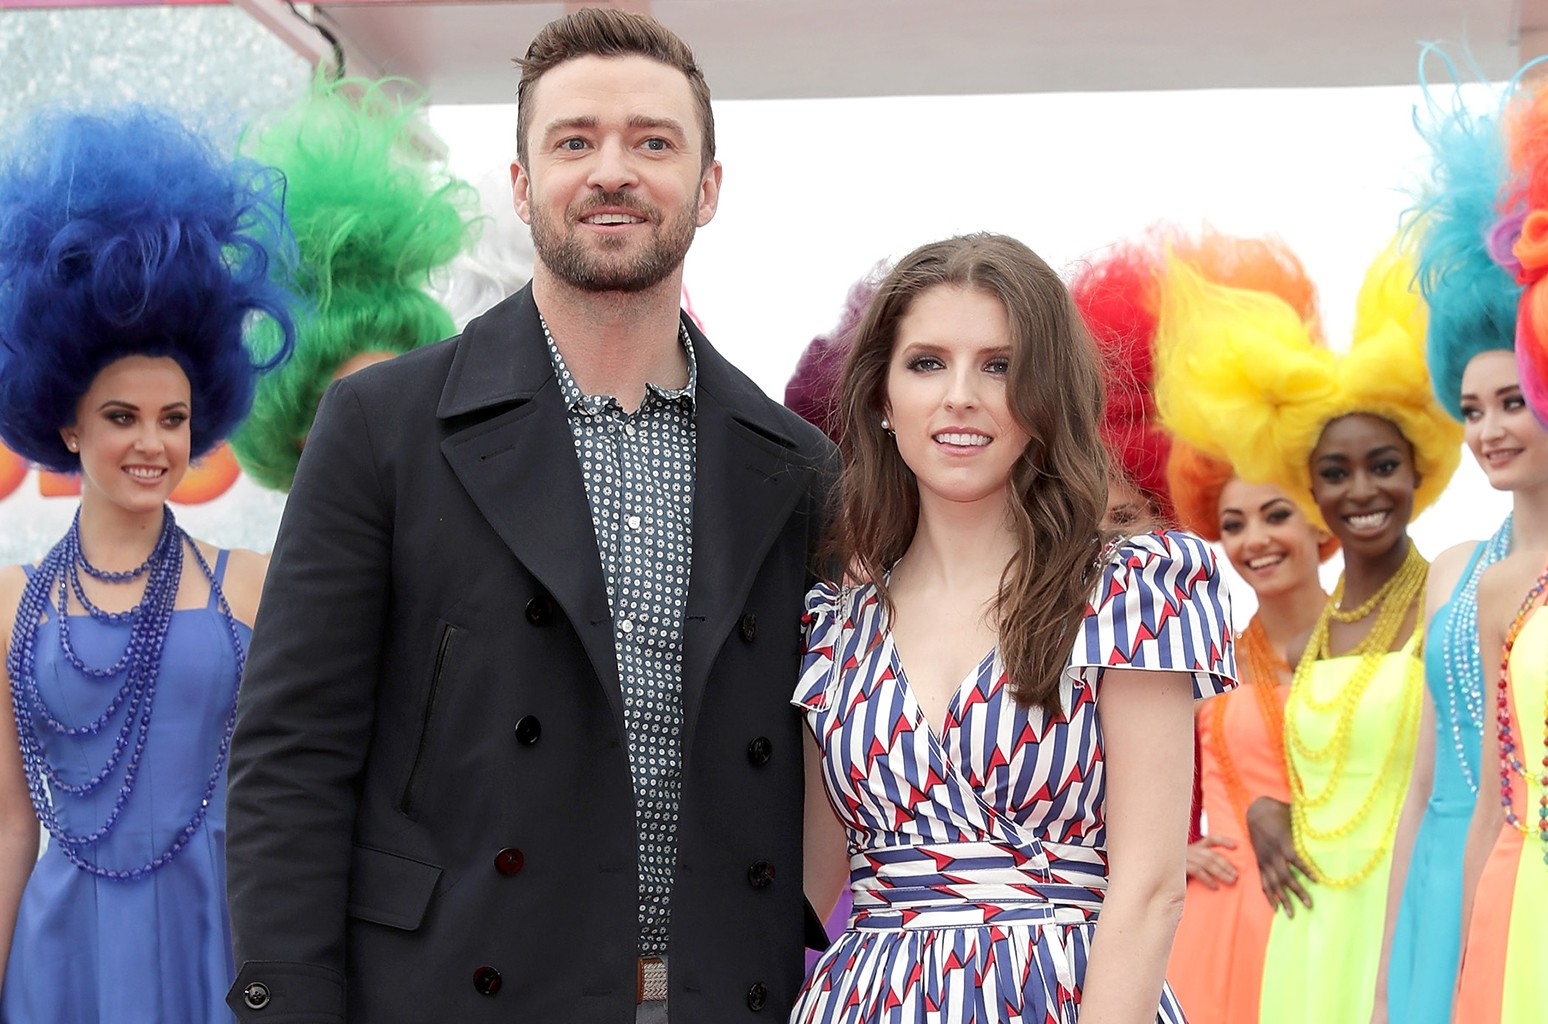 Justin Timberlake and Anna Kendrick during the Trolls photocall in Cannes